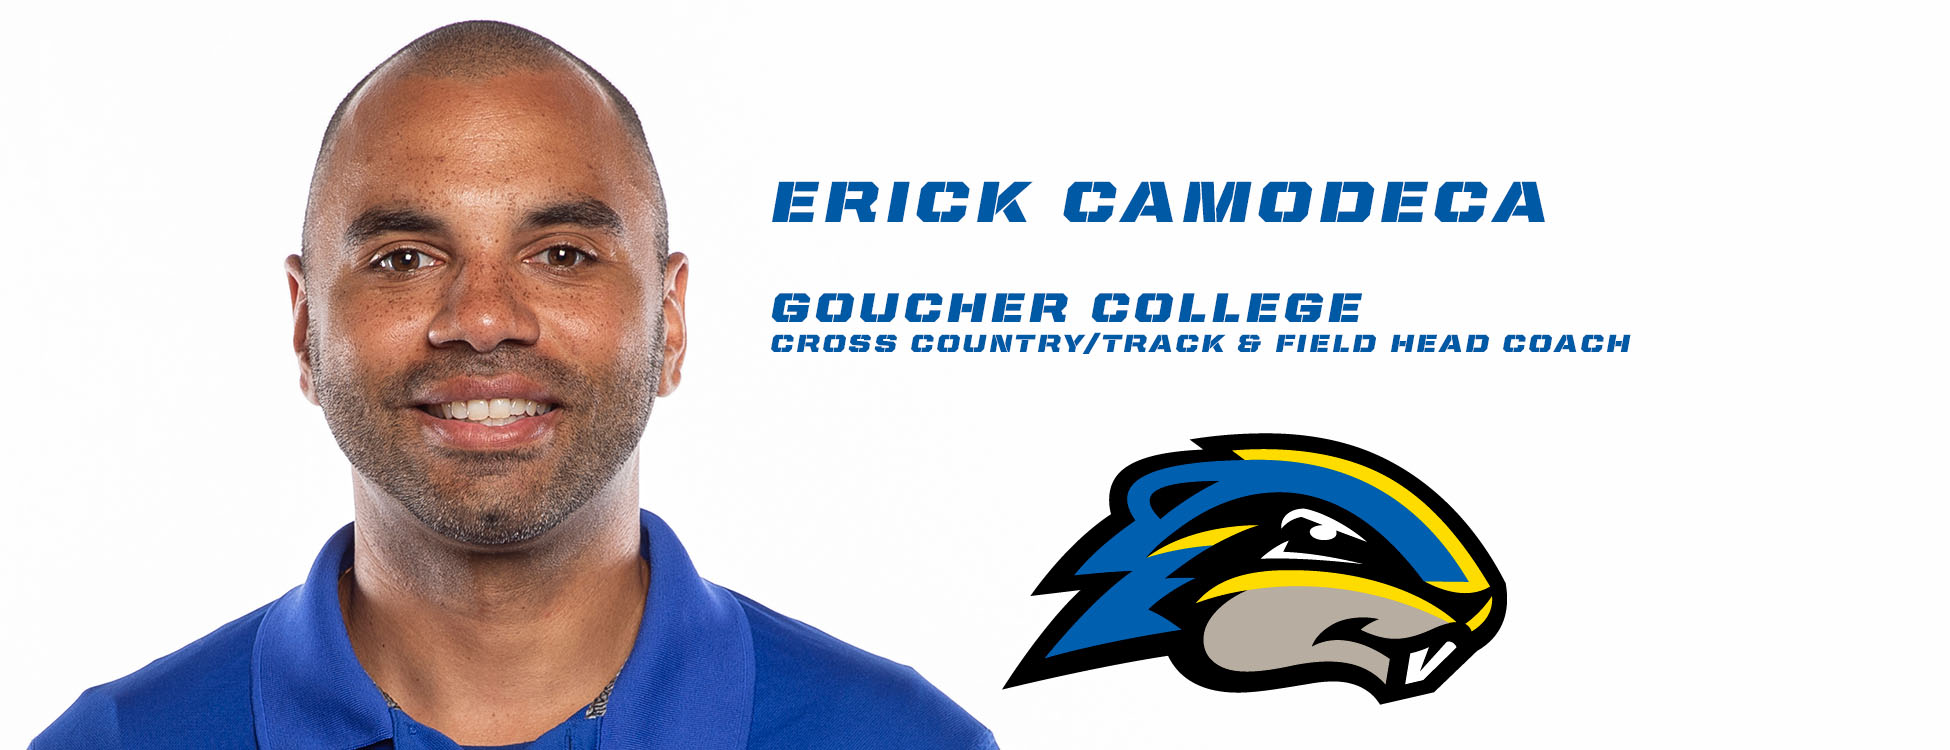 Erick Camodeca Returns To Goucher College To Take Over Cross Country And Track And Field Programs